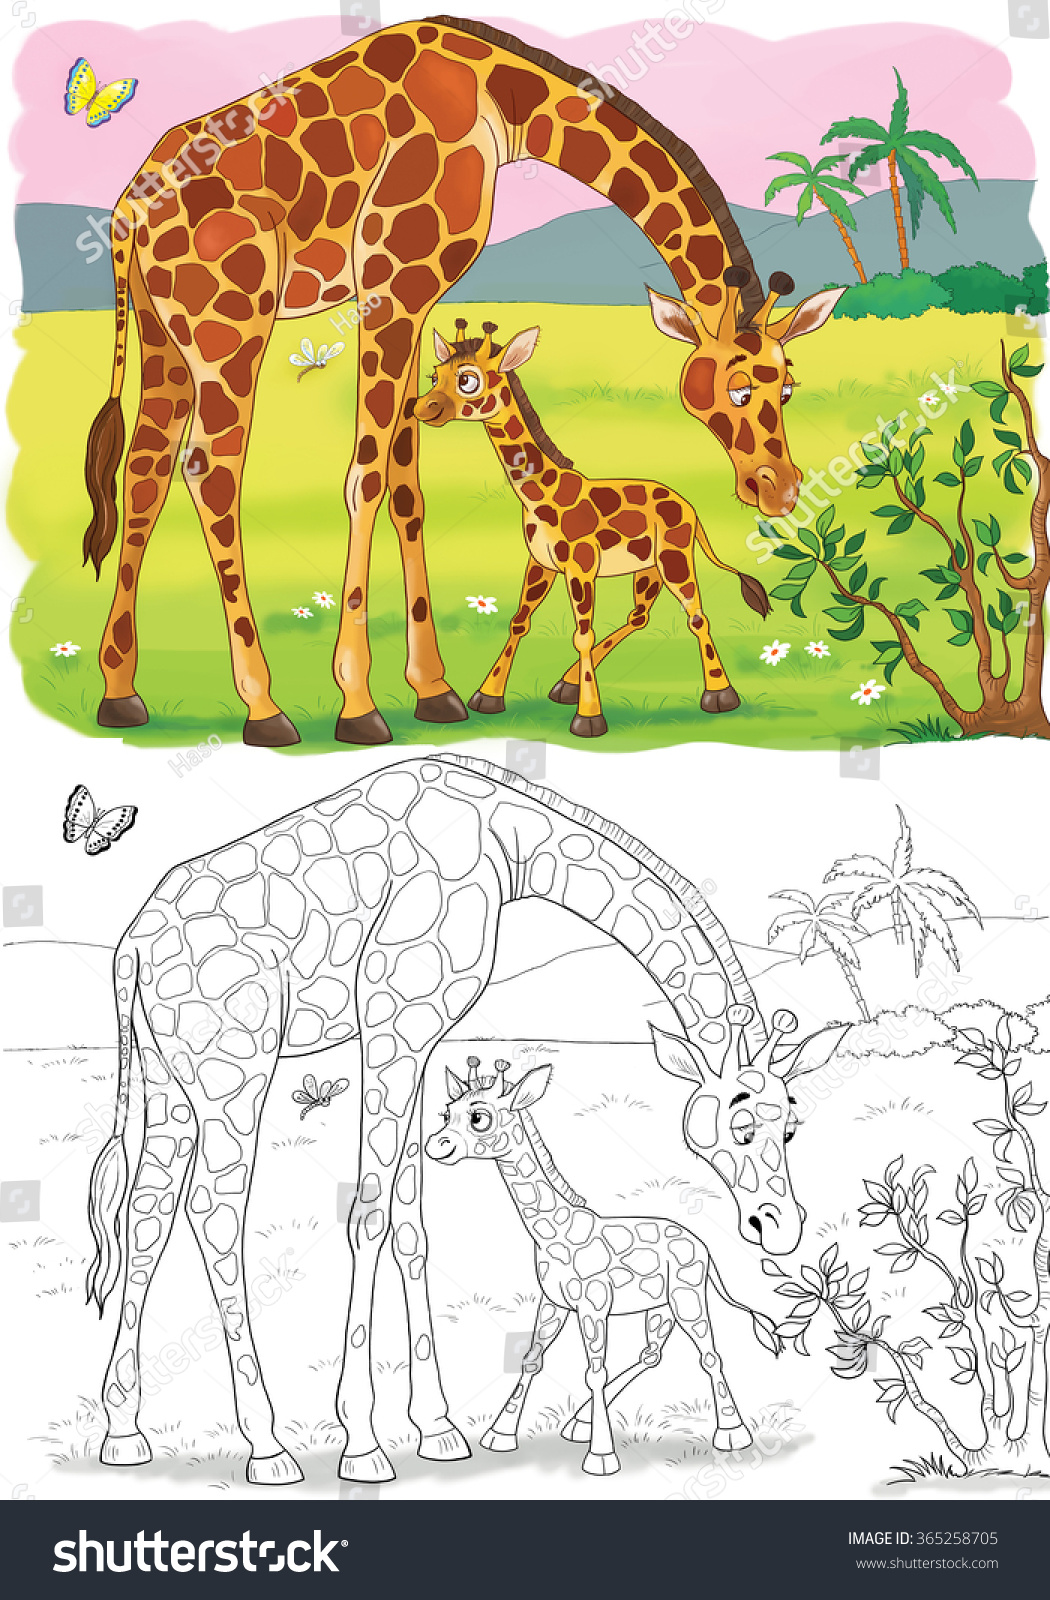 zoo animals africa giraffes cute mother stock illustration